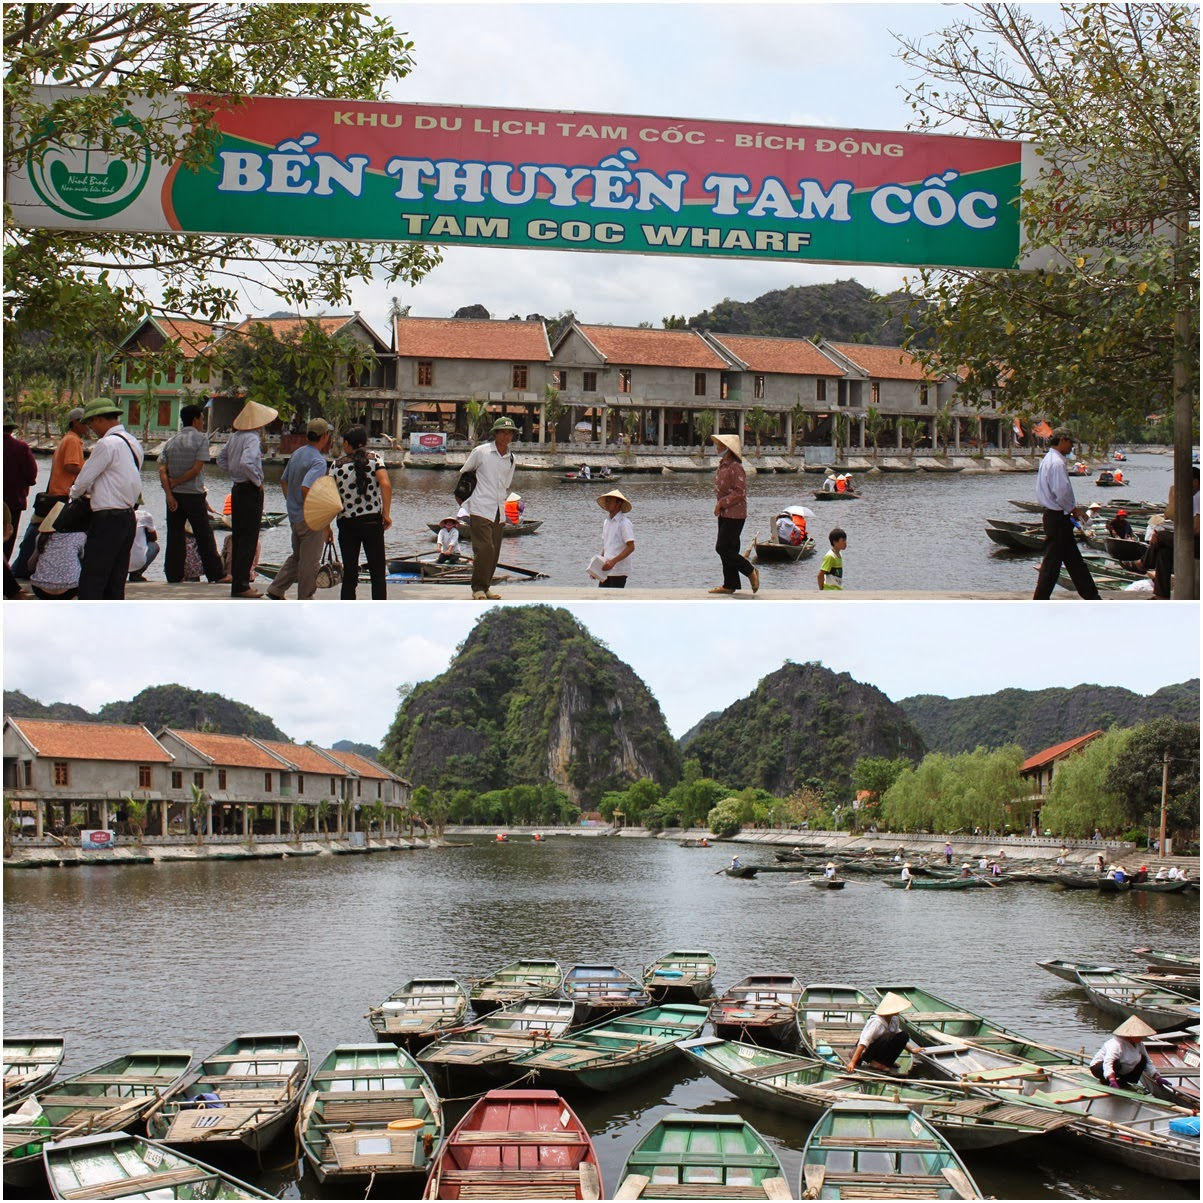 Arriving at Tam Coc Wharf near the city of Ninh Bình in northern Vietnam